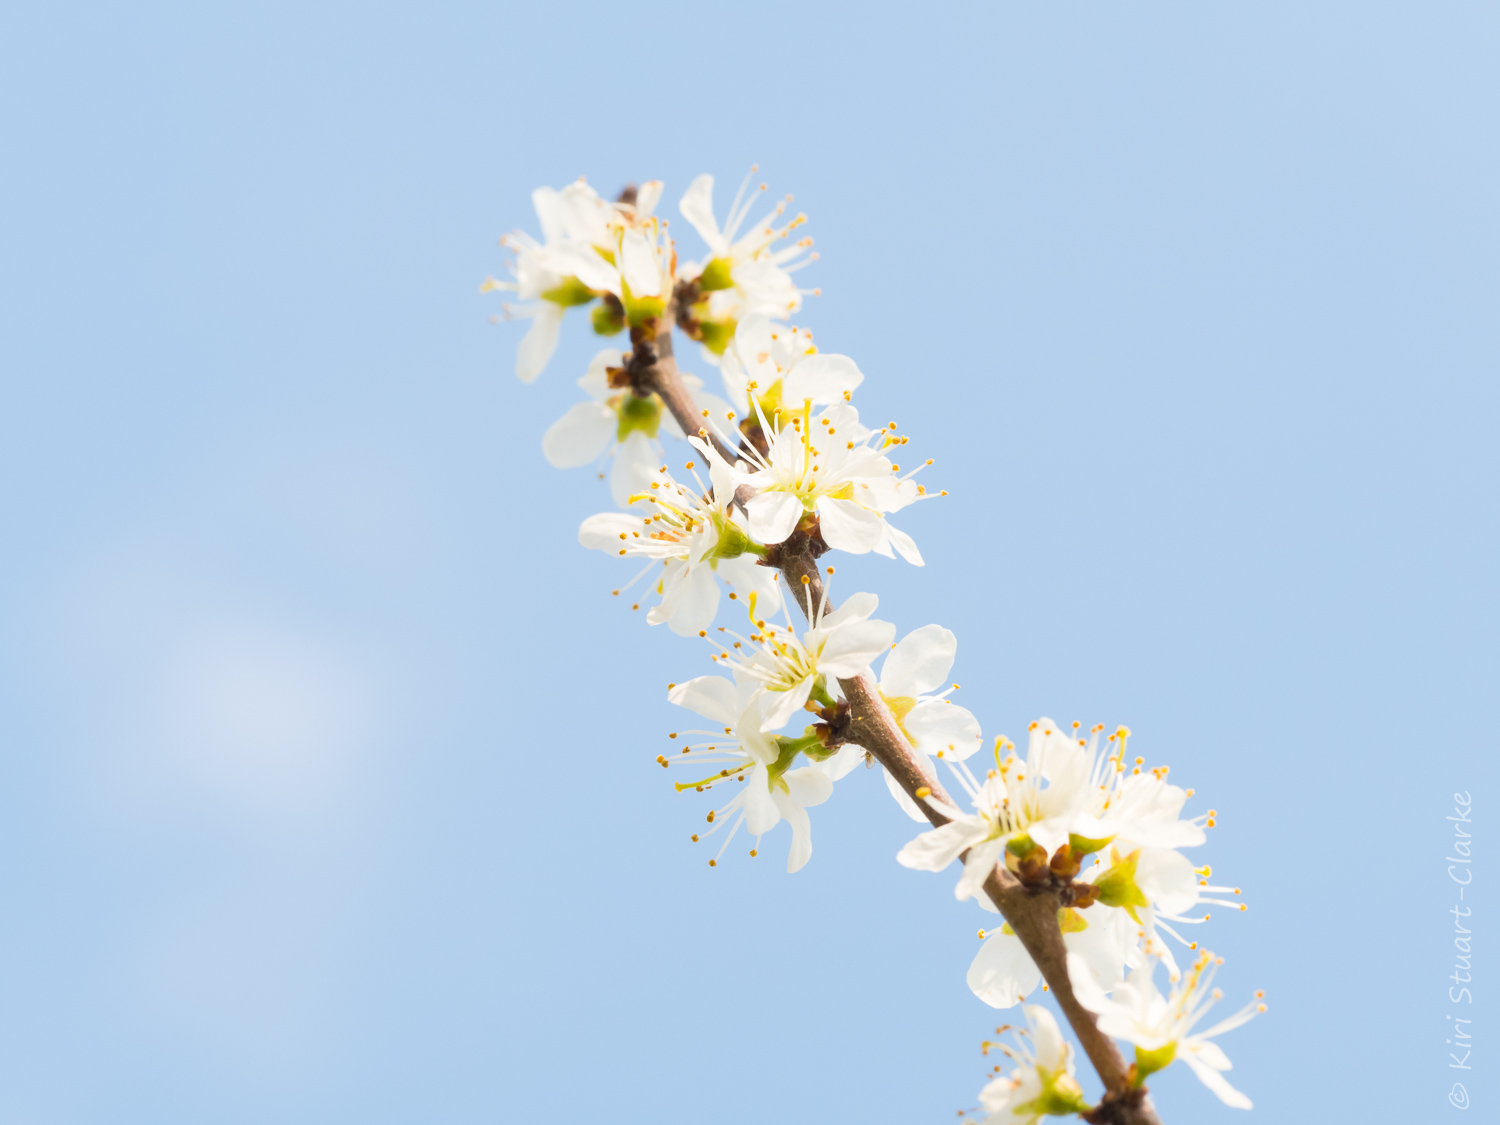 Blackthorn blossom sprig